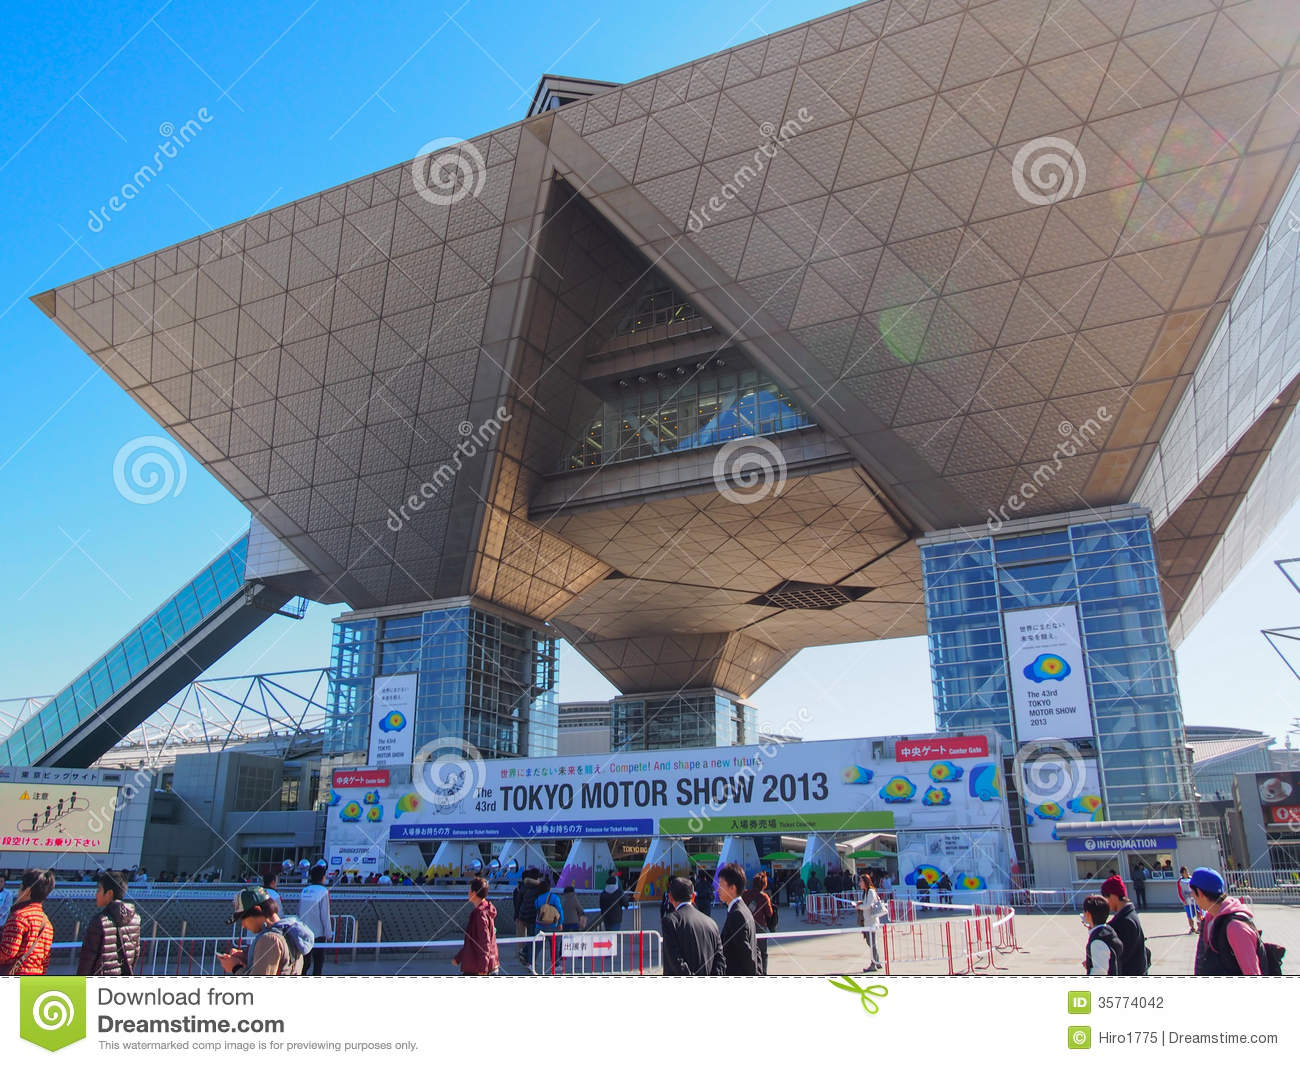 The Tokyo Motor Show is a biennial auto show at the Tokyo Big Sight in Odaiba, Tokyo for cars, motorcycles and commercial vehicles.